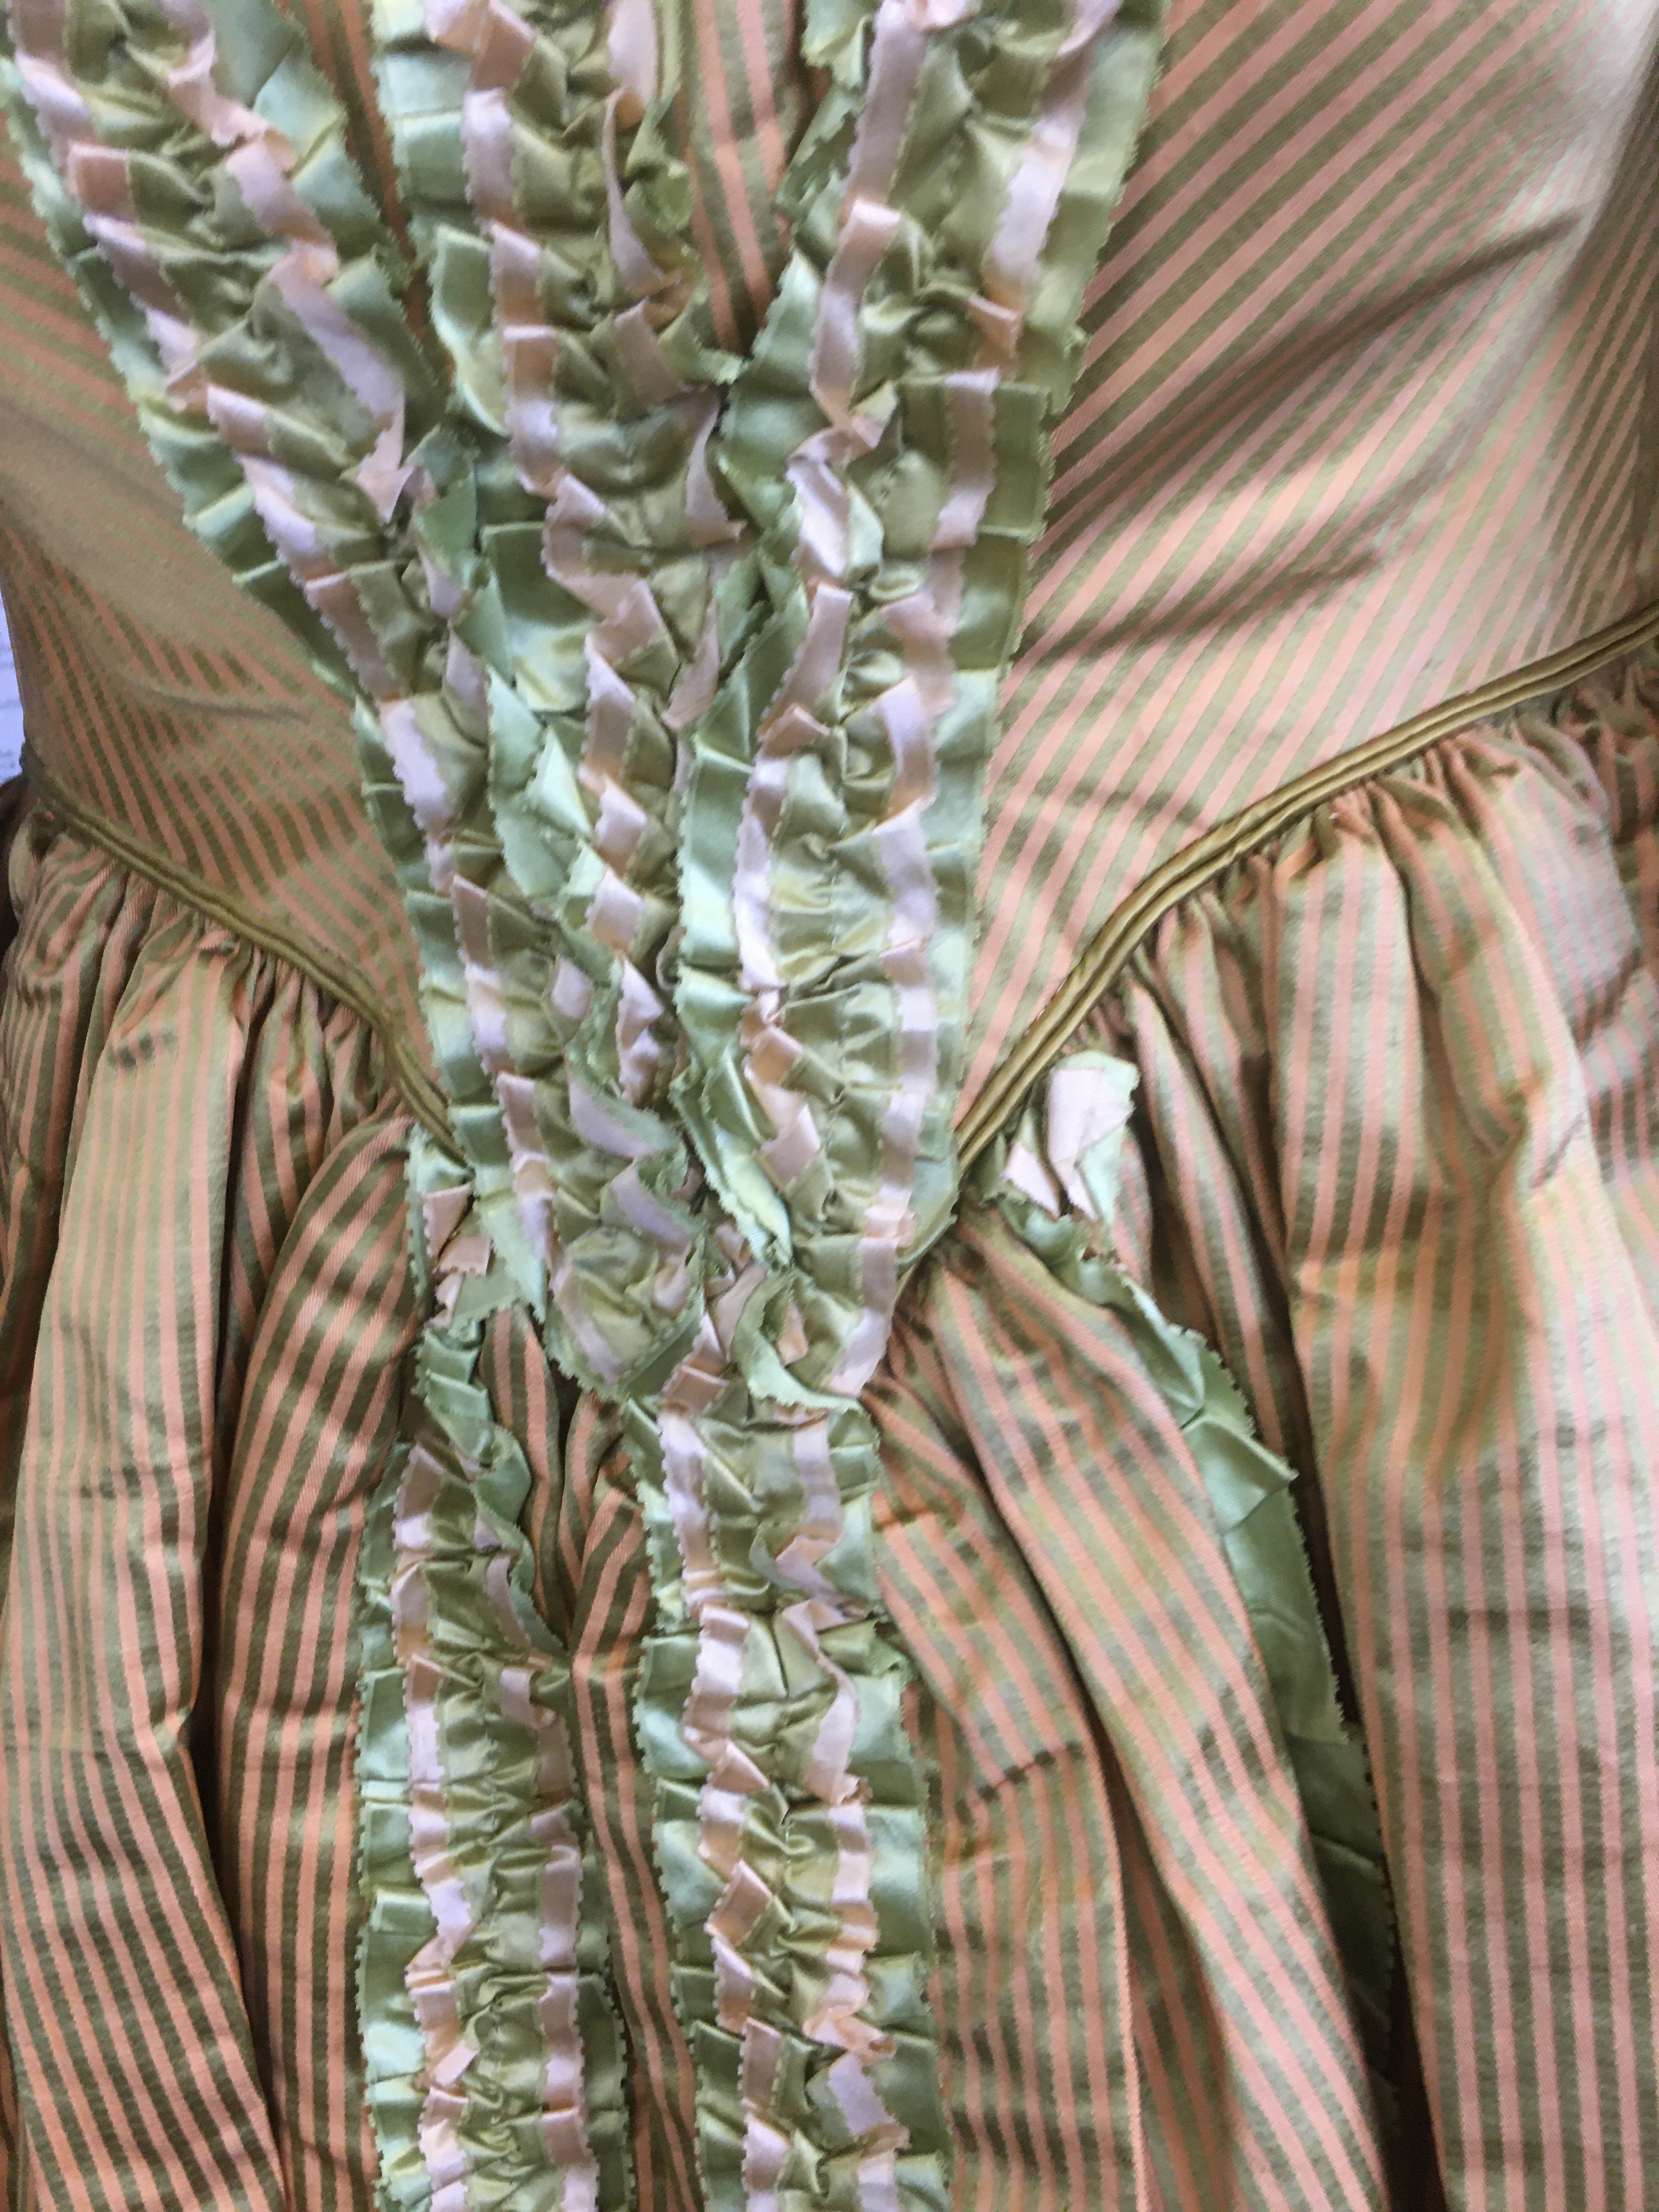 19THC SILK LADIES DRESS a mid 19thc apricot and olive green striped silk dress, decorated with - Image 8 of 9